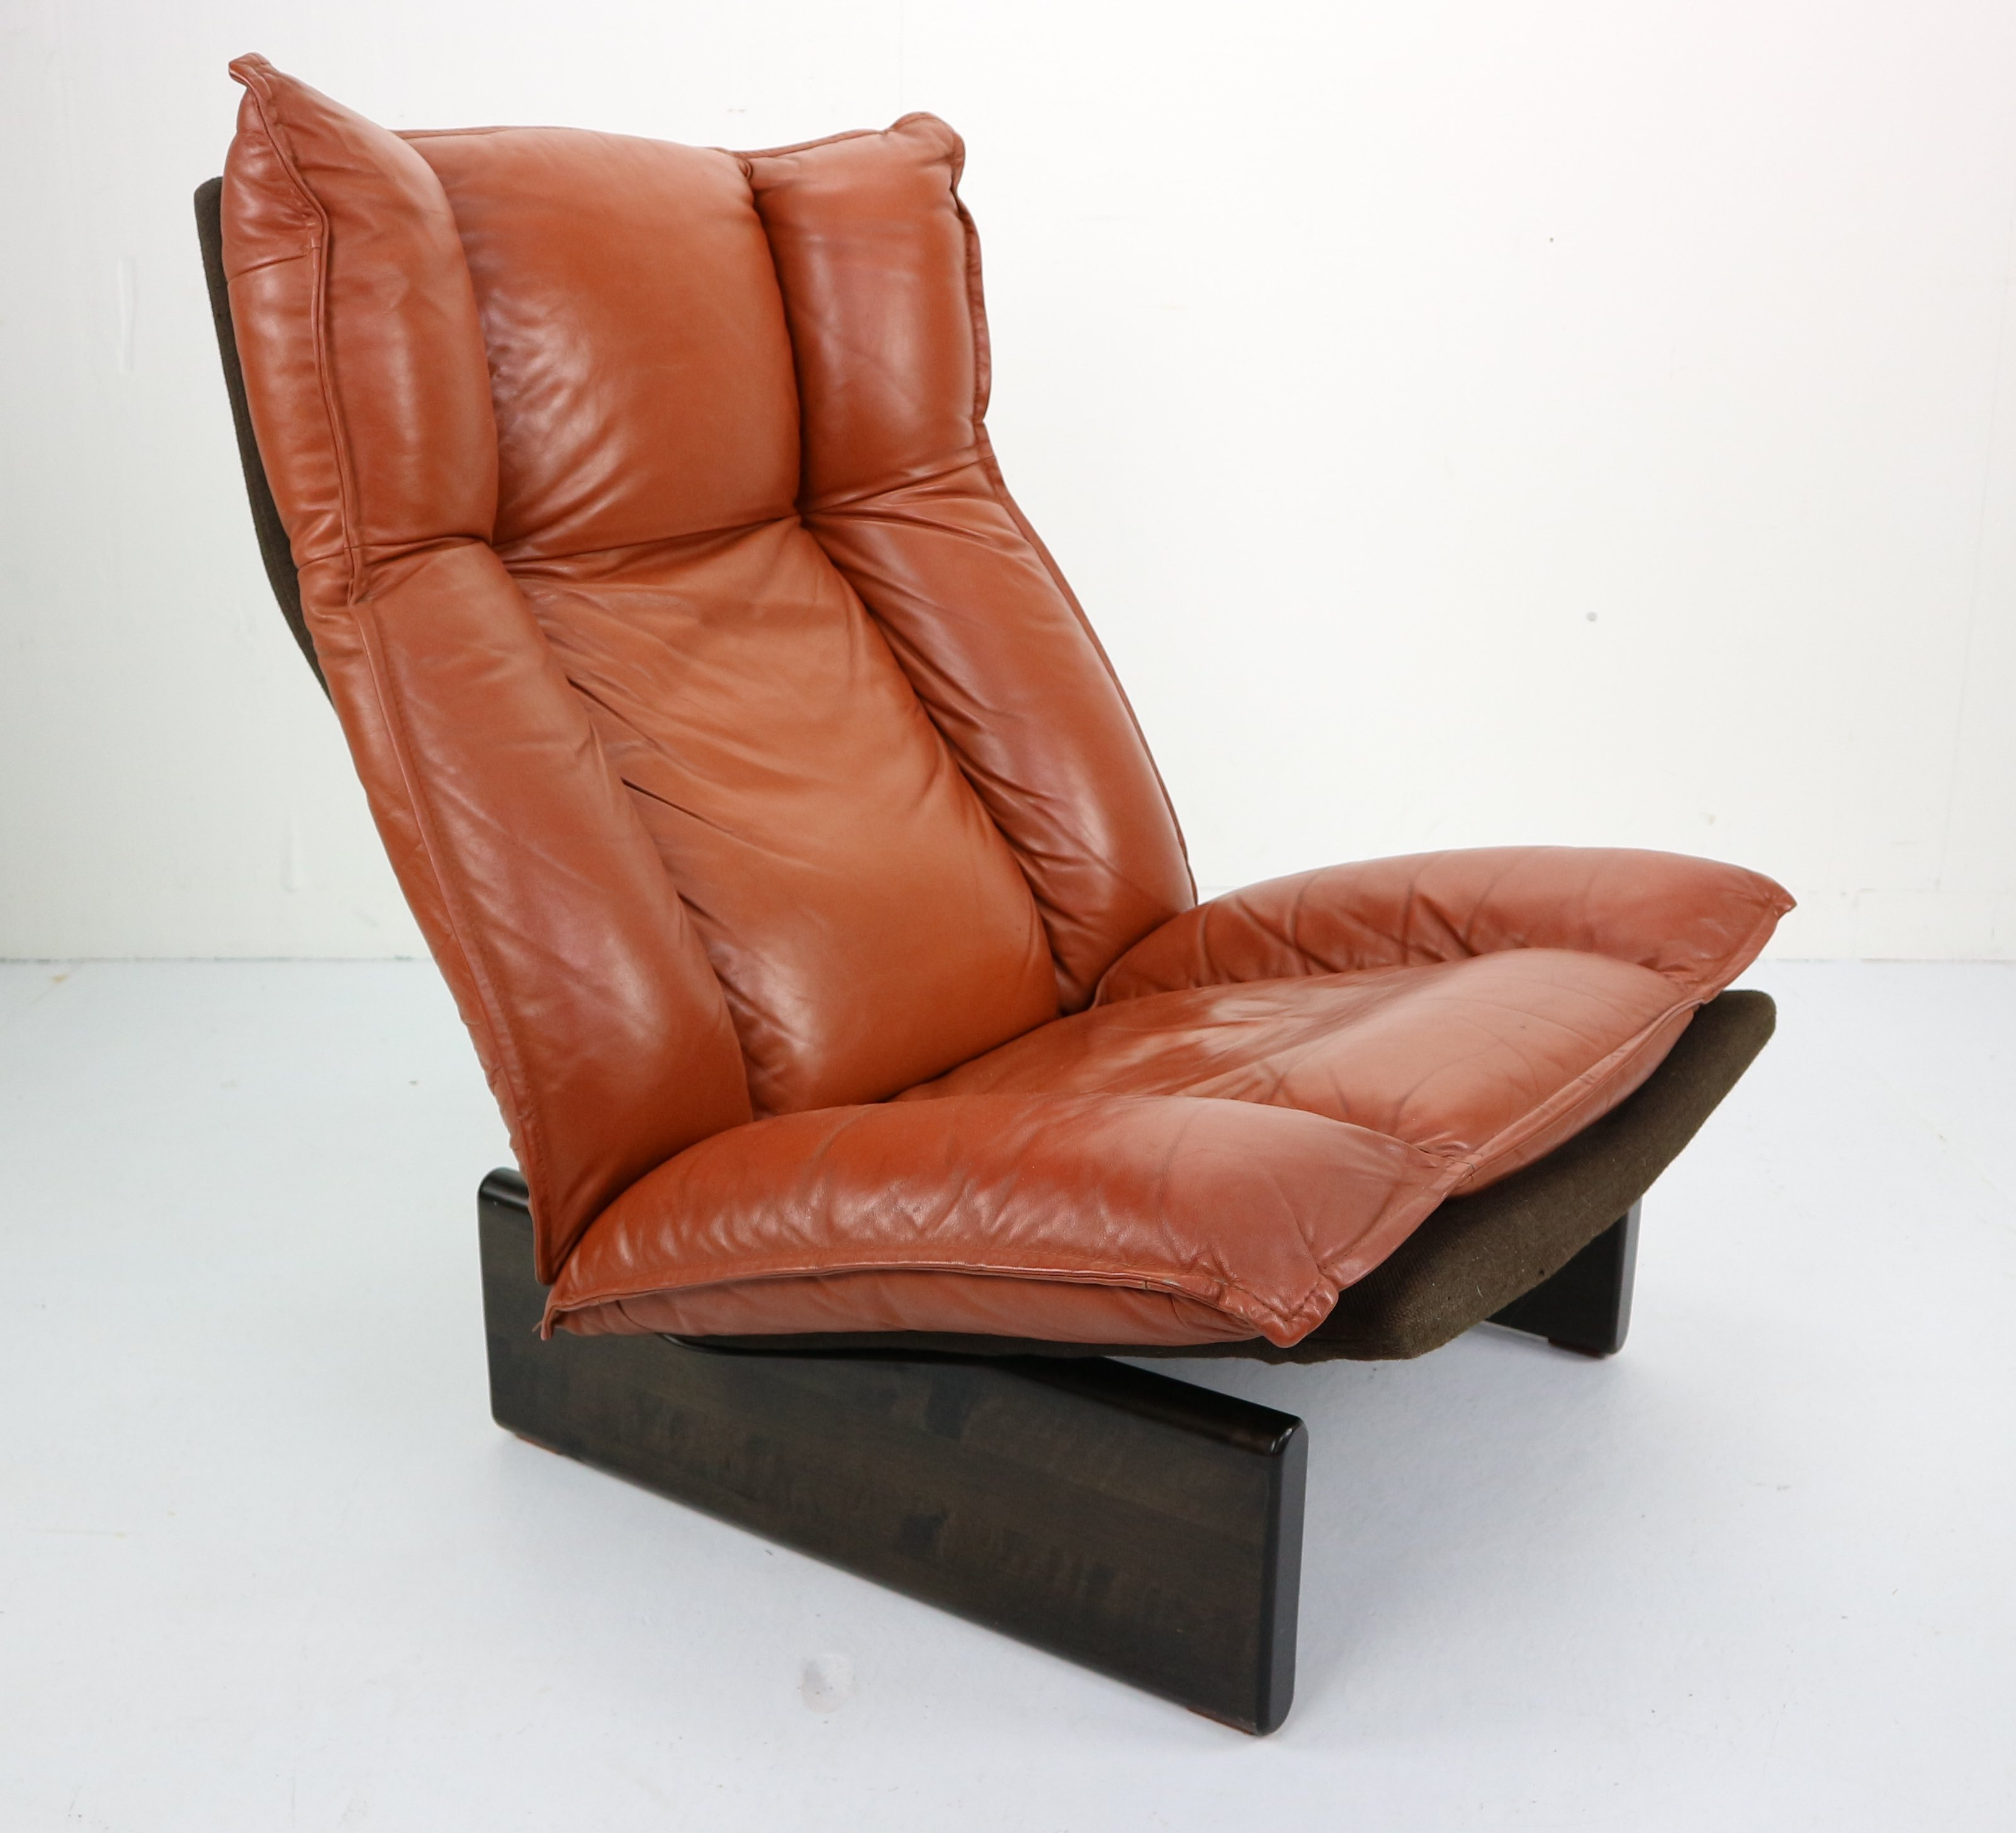 Brilliant Dutch Modern Design Cognac Leather Wood Lounge Chair 1970S Gmtry Best Dining Table And Chair Ideas Images Gmtryco